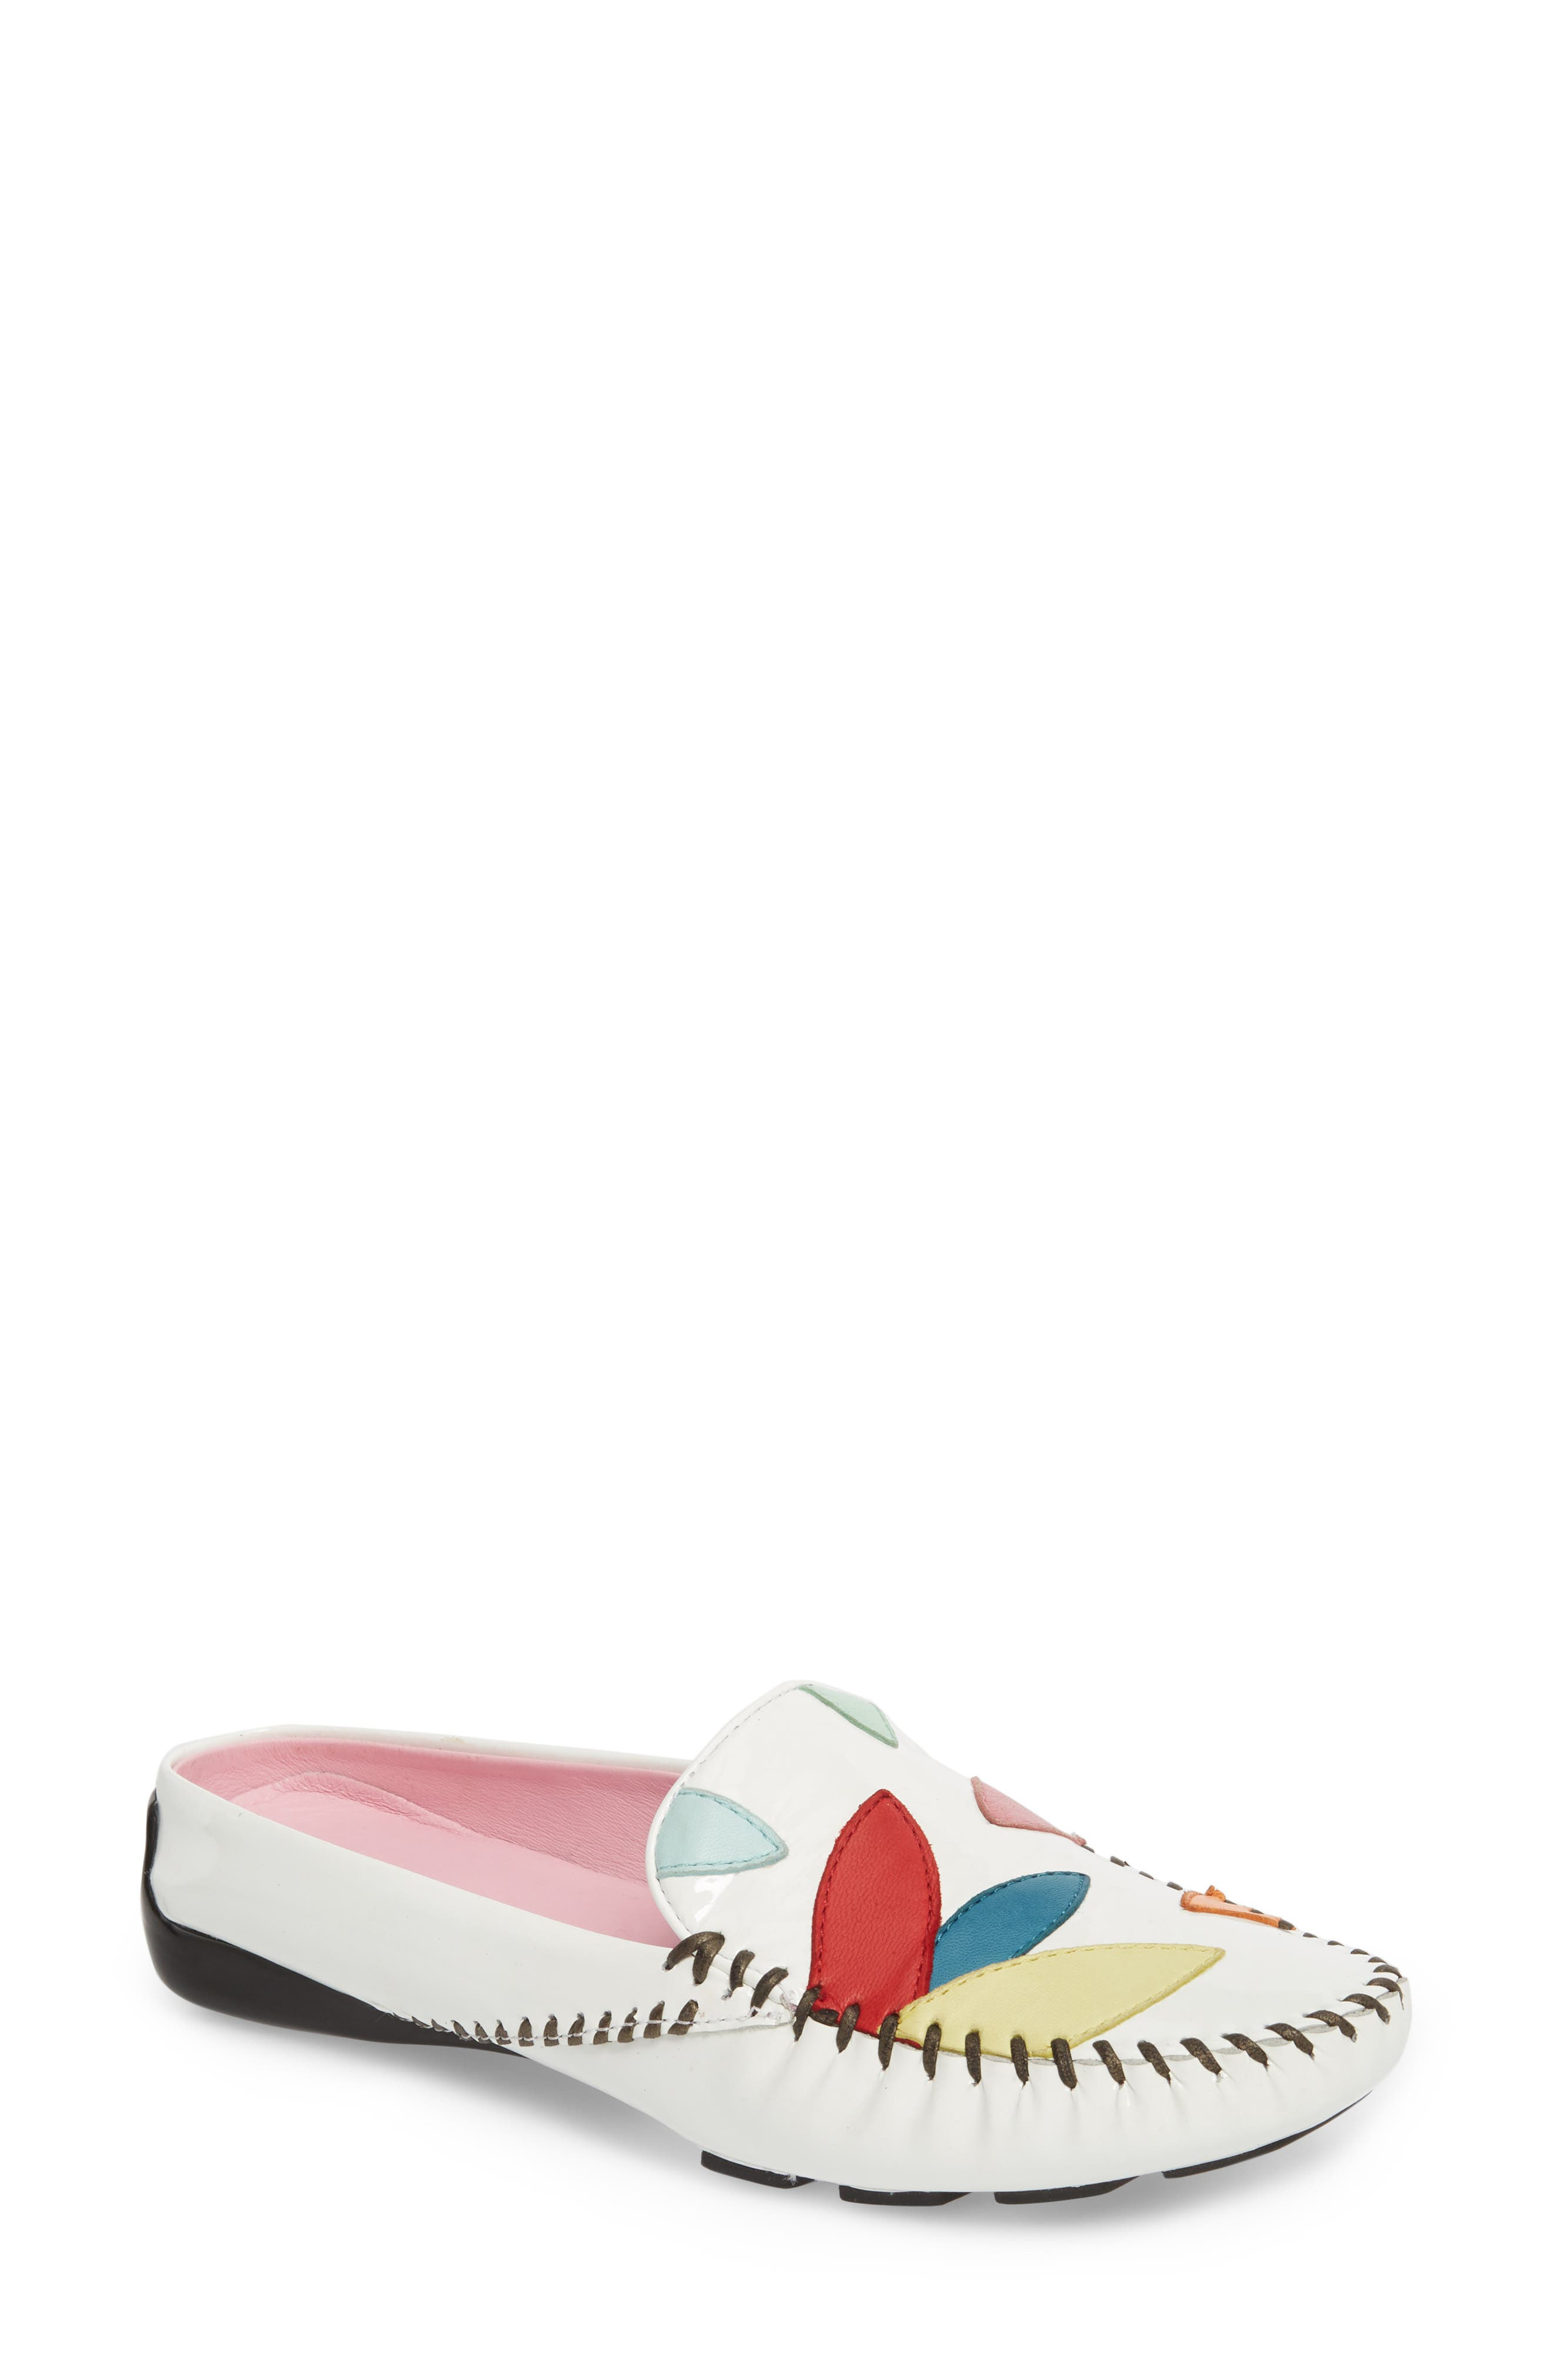 Rio Moccasin Mule,                             Main thumbnail 1, color,                             White Combo Leather